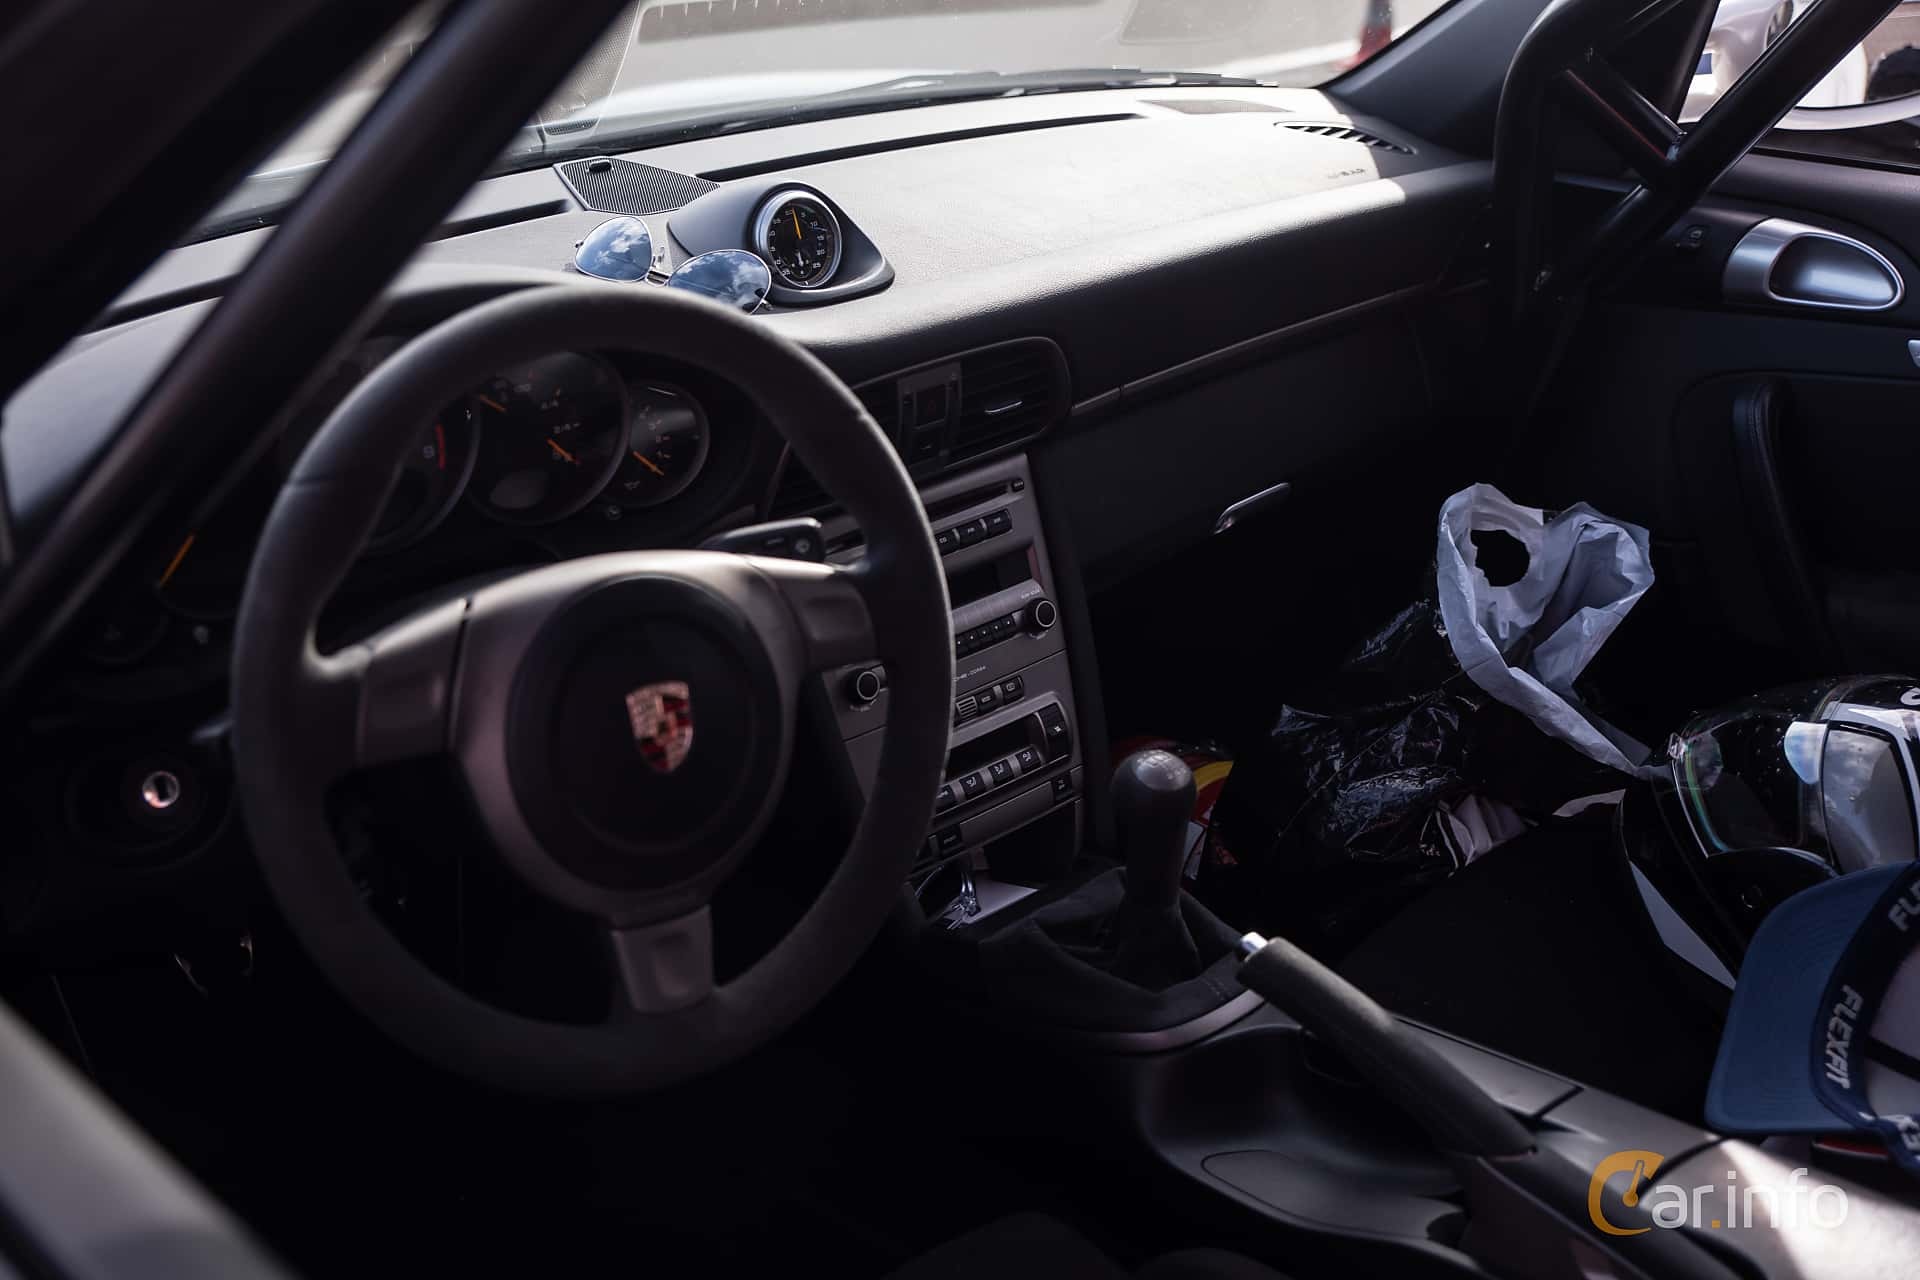 Interior of Porsche 911 GT3 3.6 H6 Manual, 415ps, 2007 at JapTuning Trackday 2018 Knutstorp